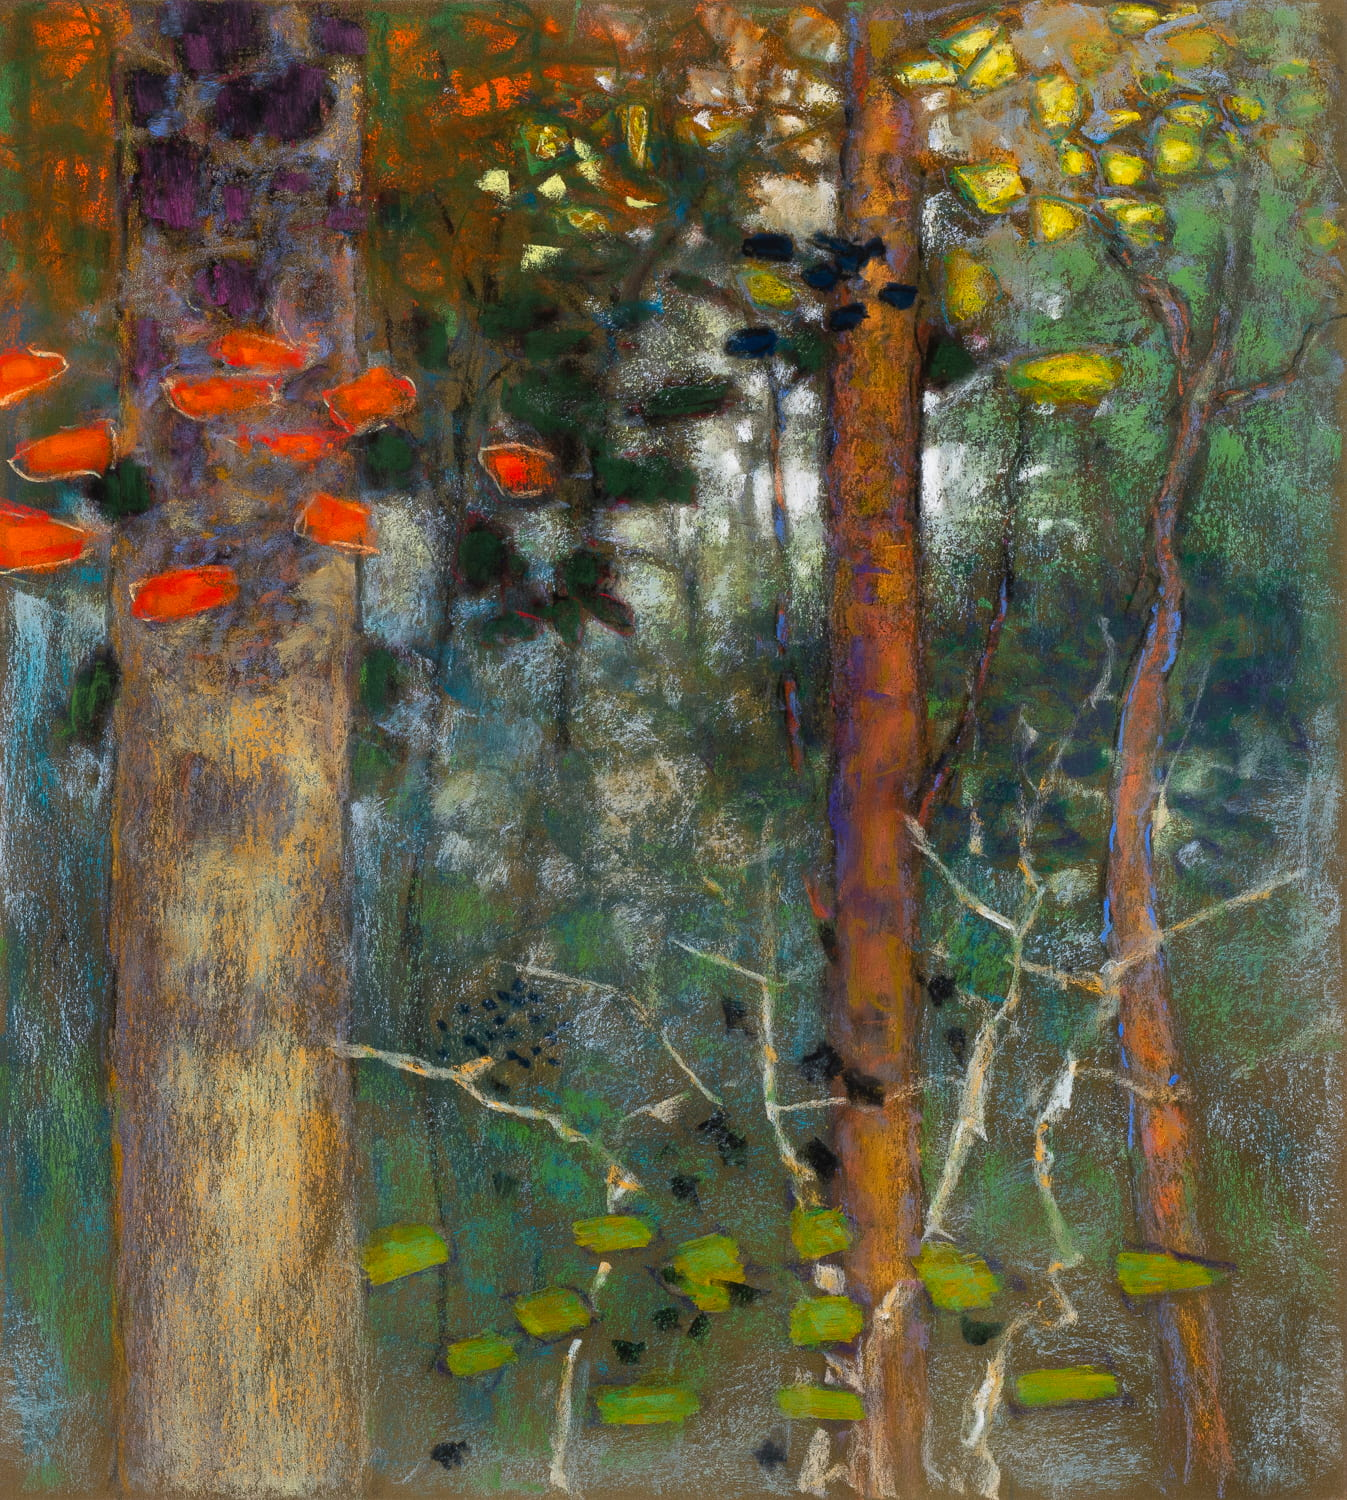 Woodland Ballad  | pastel on paper | 20 x 18"